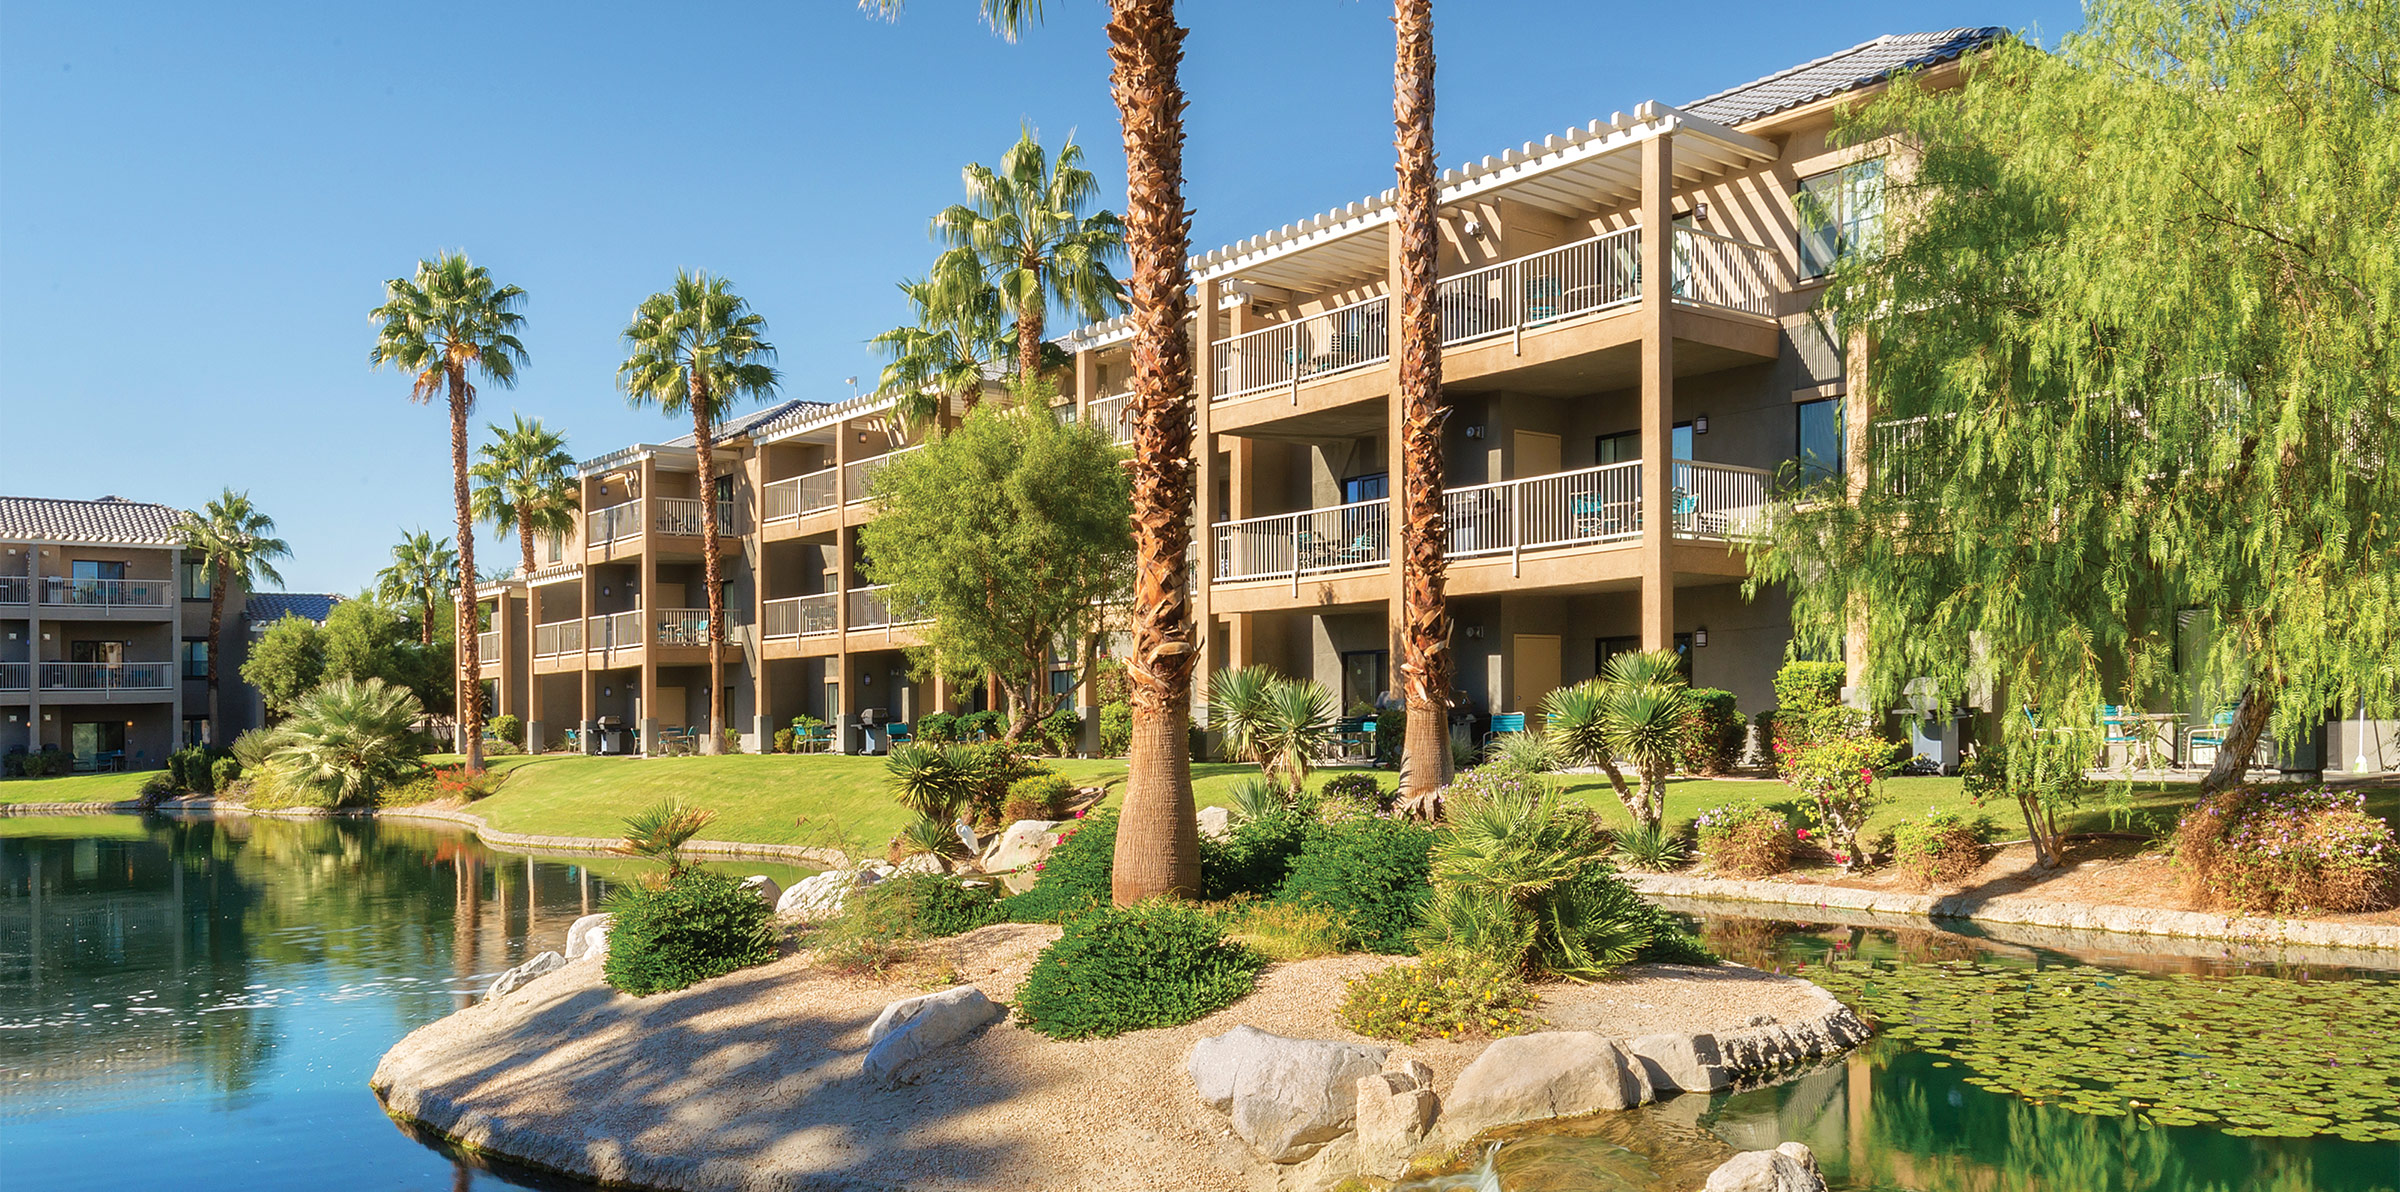 Apartment 2 Bedroom 2 Bath In Indio  CA   Palm Springs  5 miles from COACHELLA photo 18436728